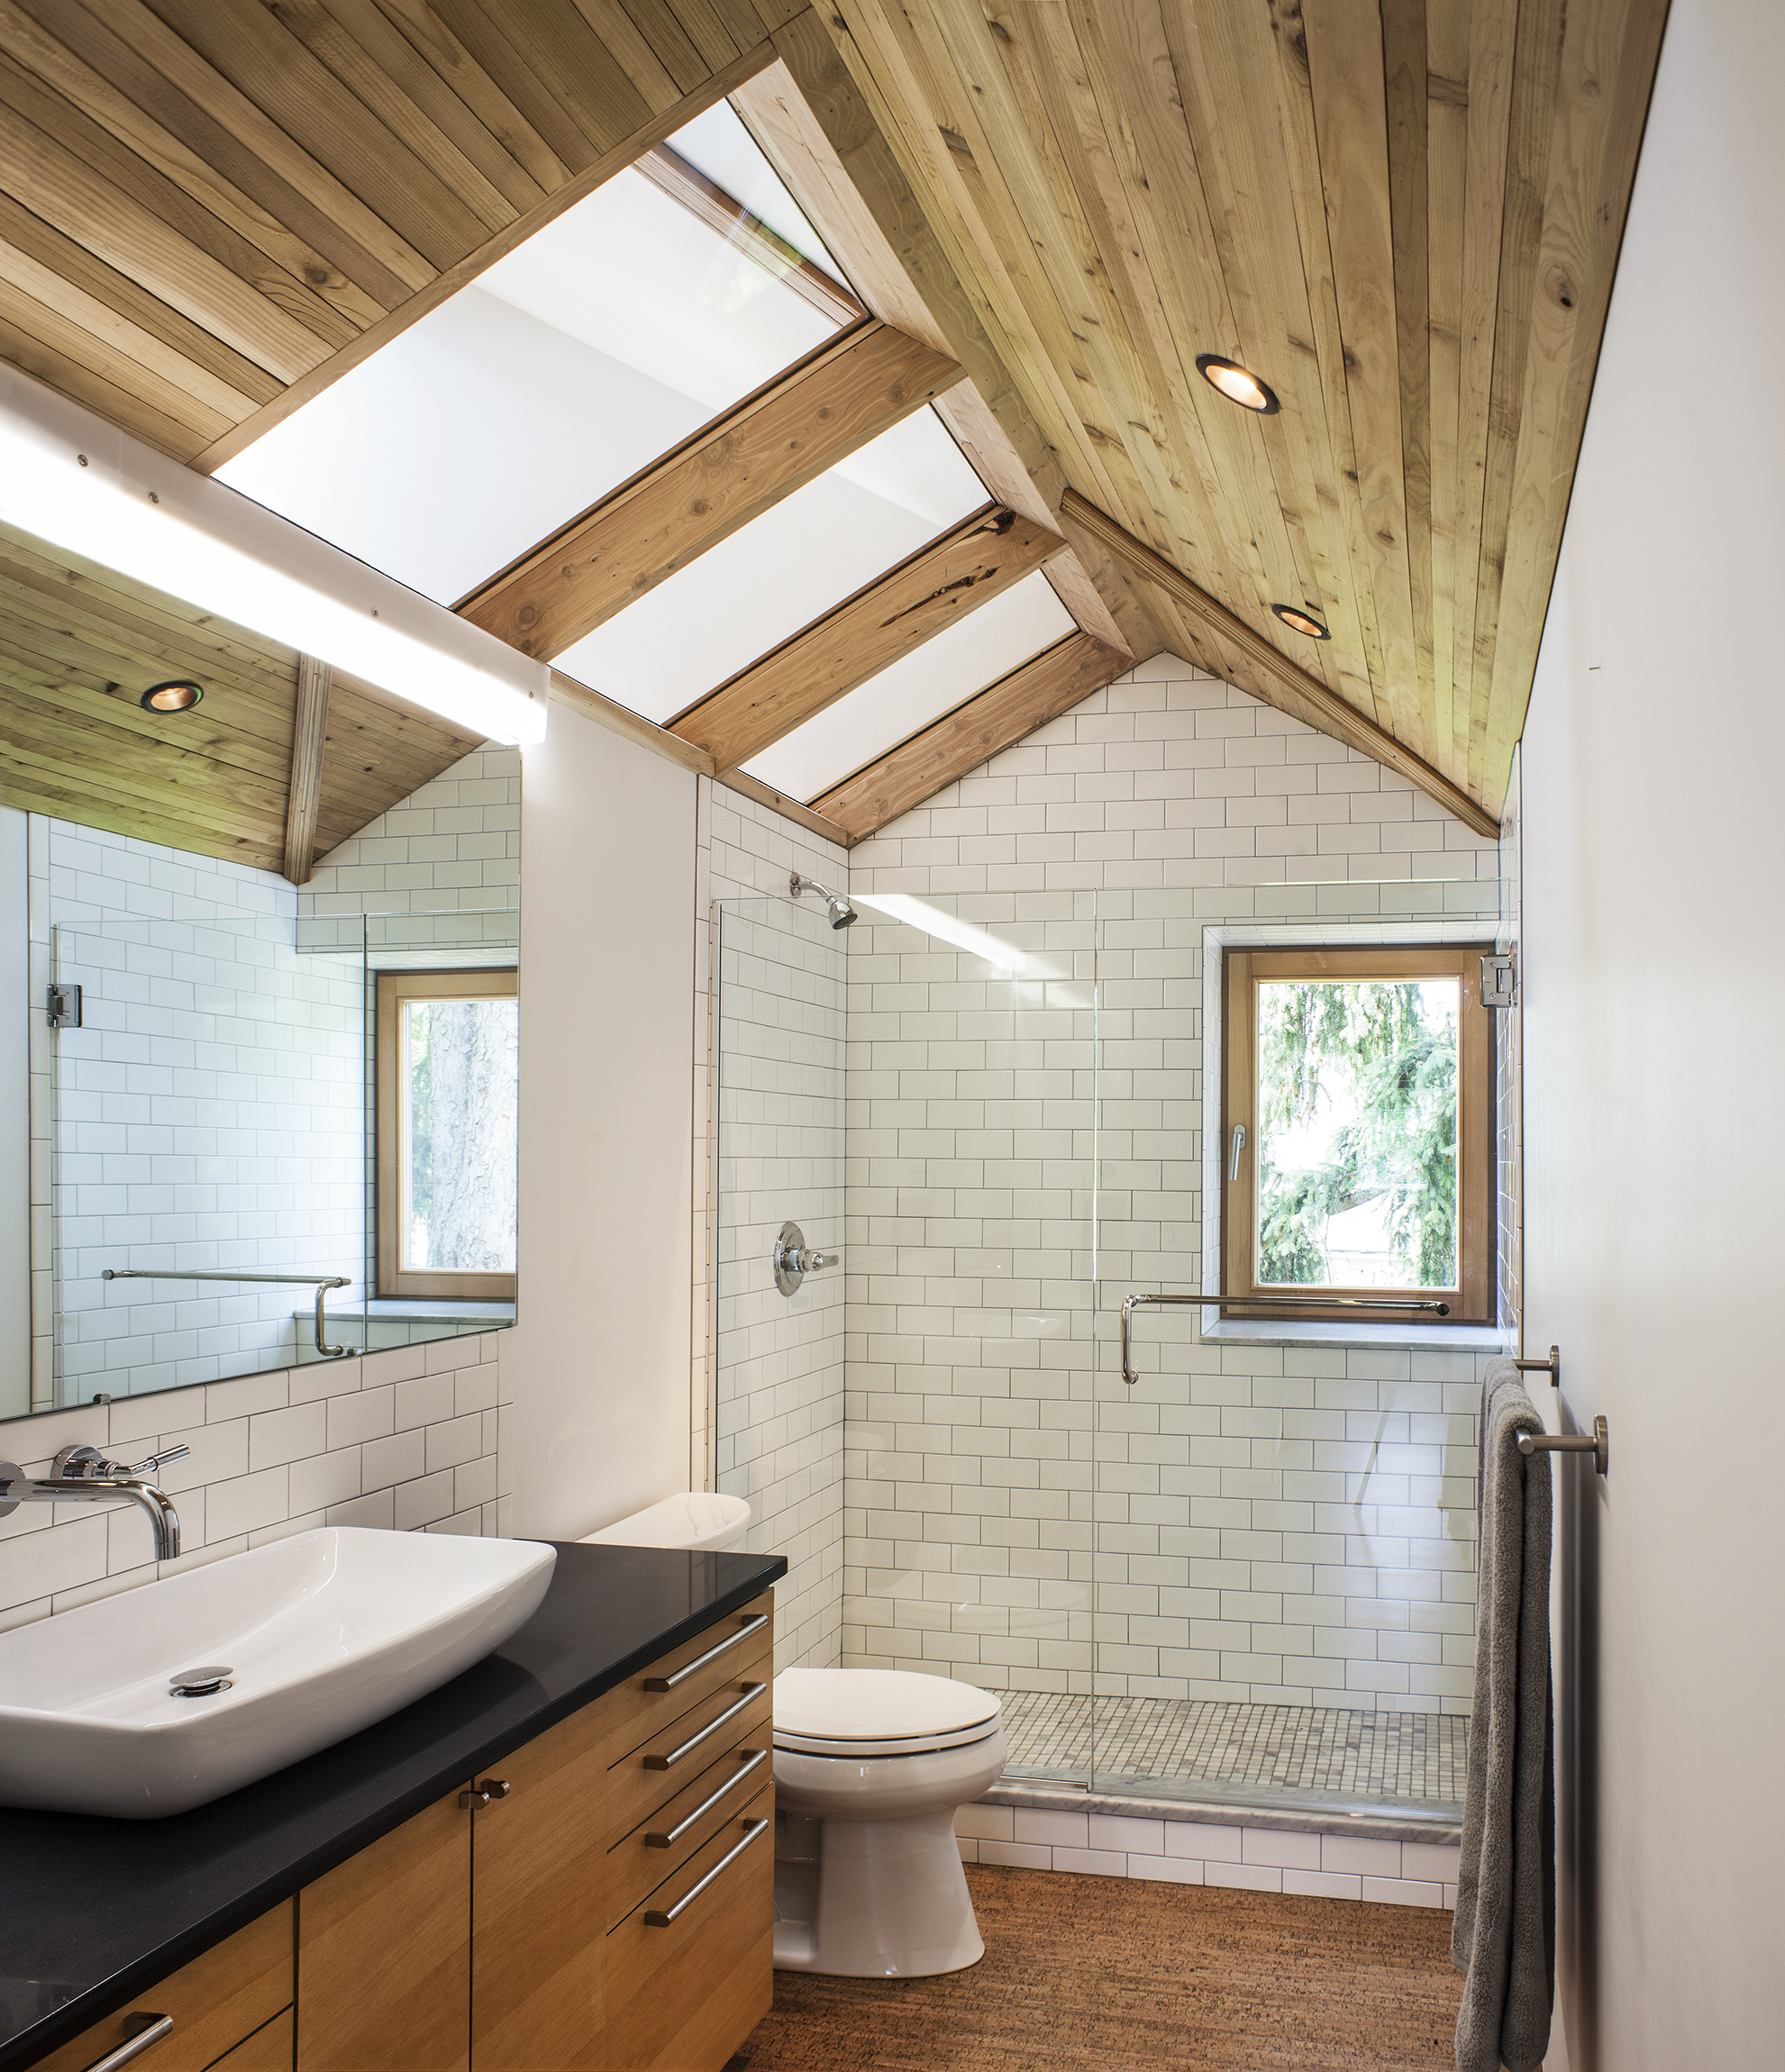 Hinge-Build-Group-Passive-House-bath.jpg